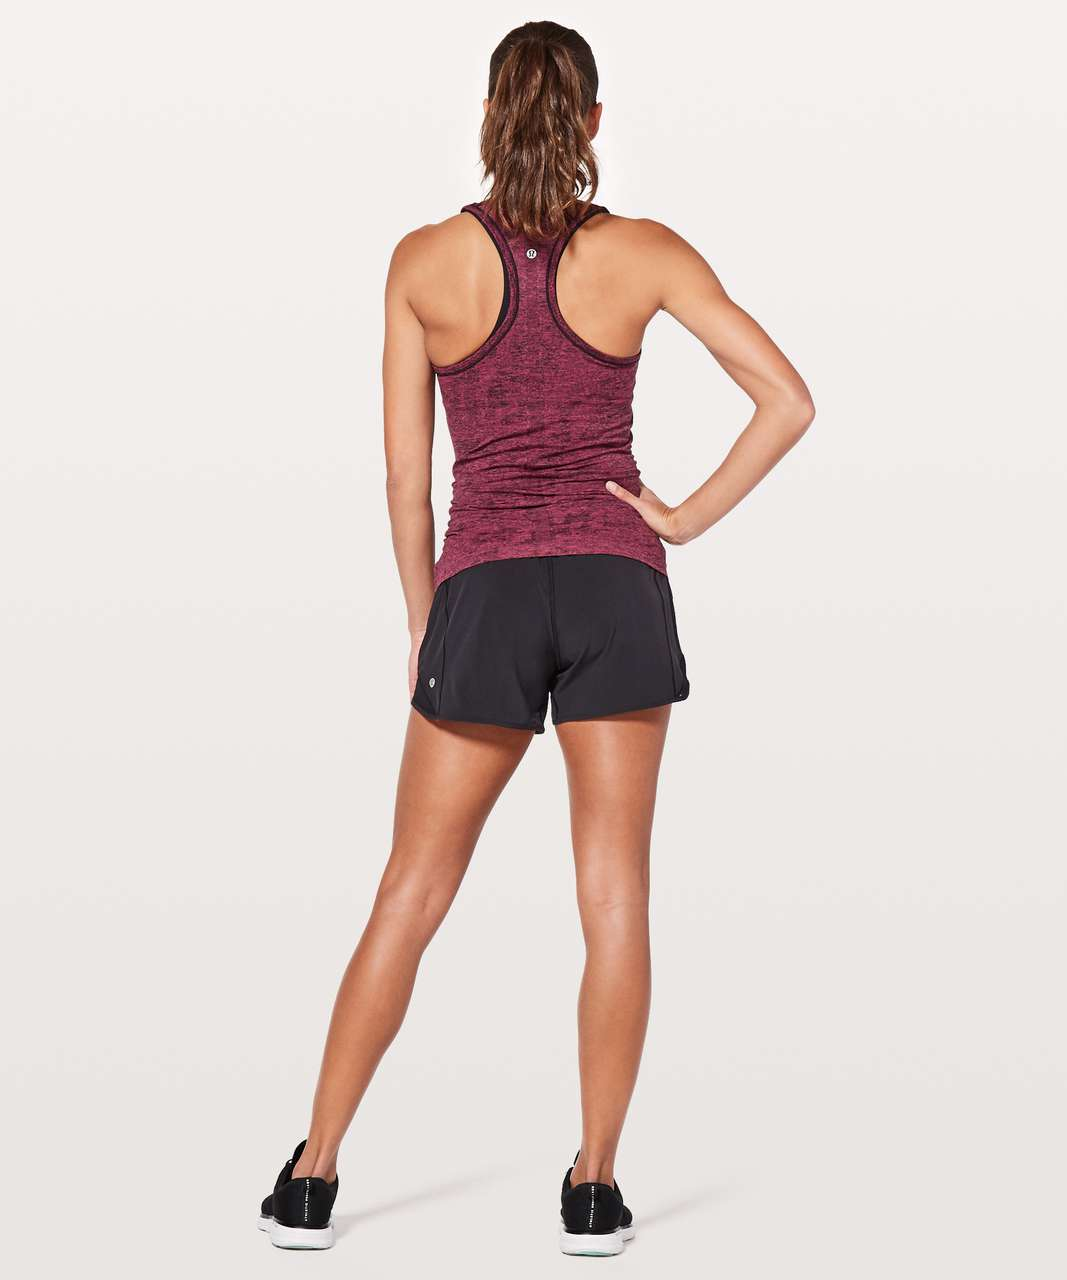 Lululemon Swiftly Tech Racerback - Fuchsia Pink / Black